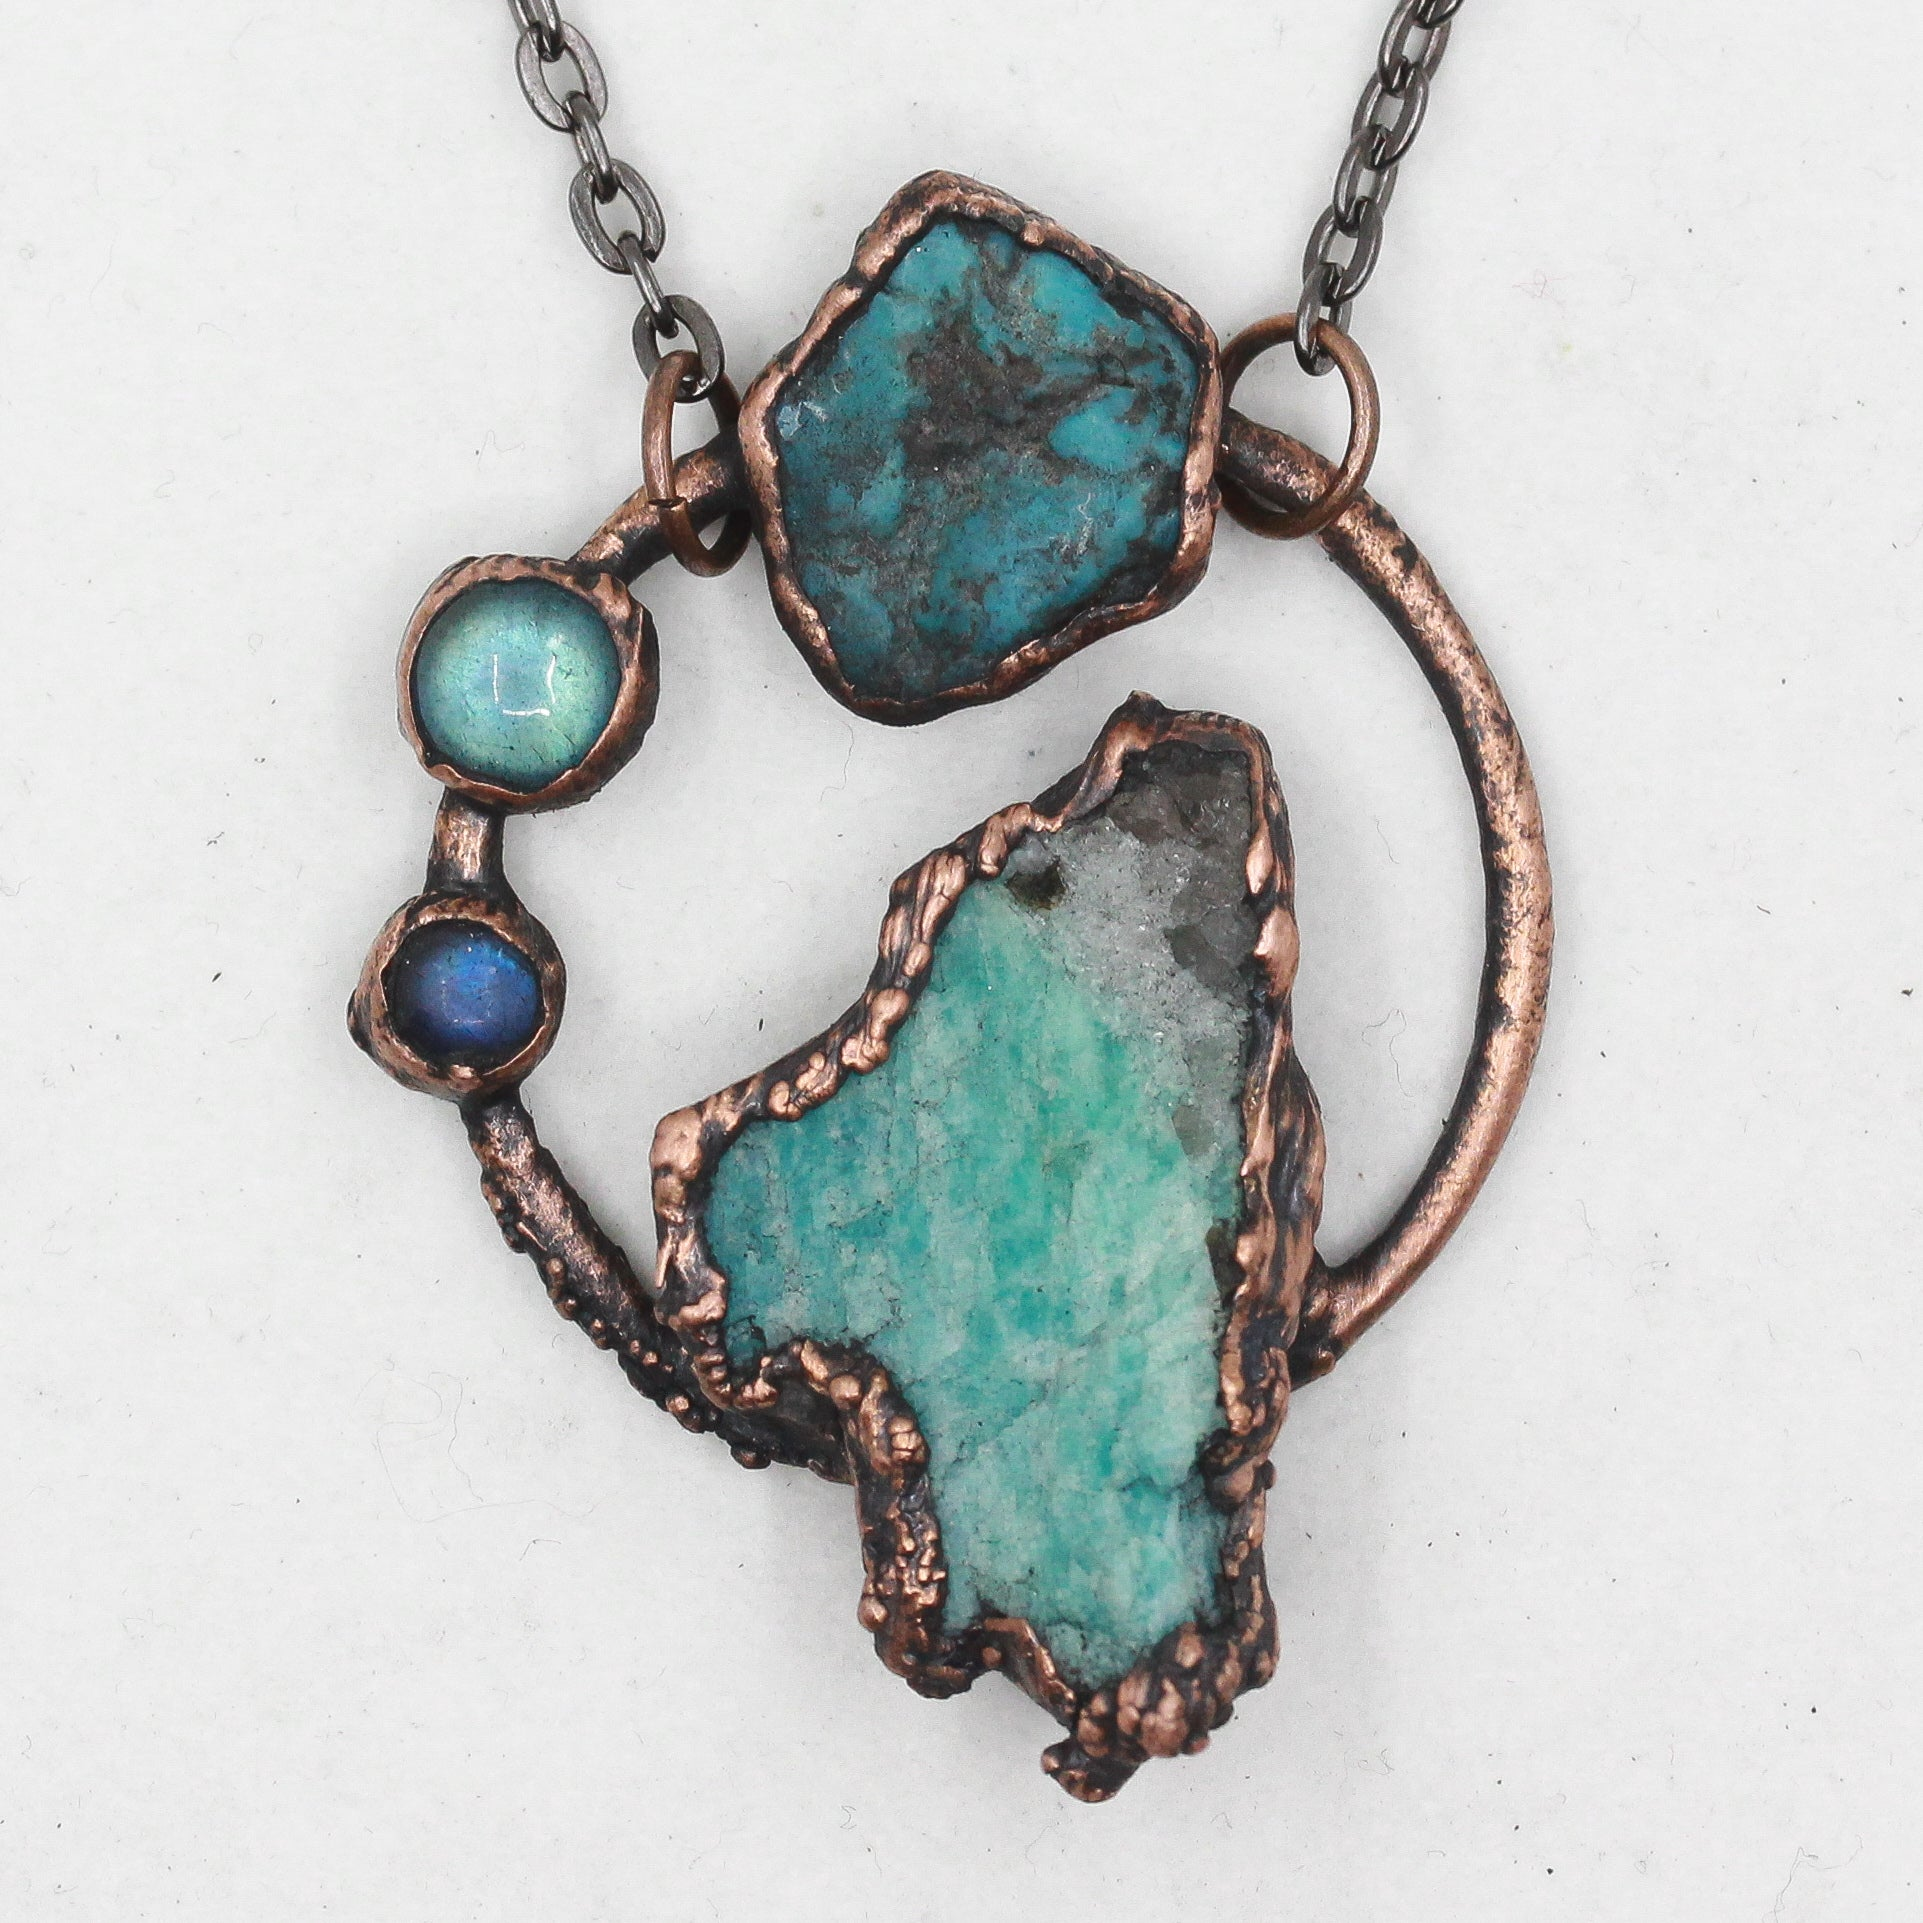 Electroformed Amazonite, Labradorite & Turquoise Hoop Necklace